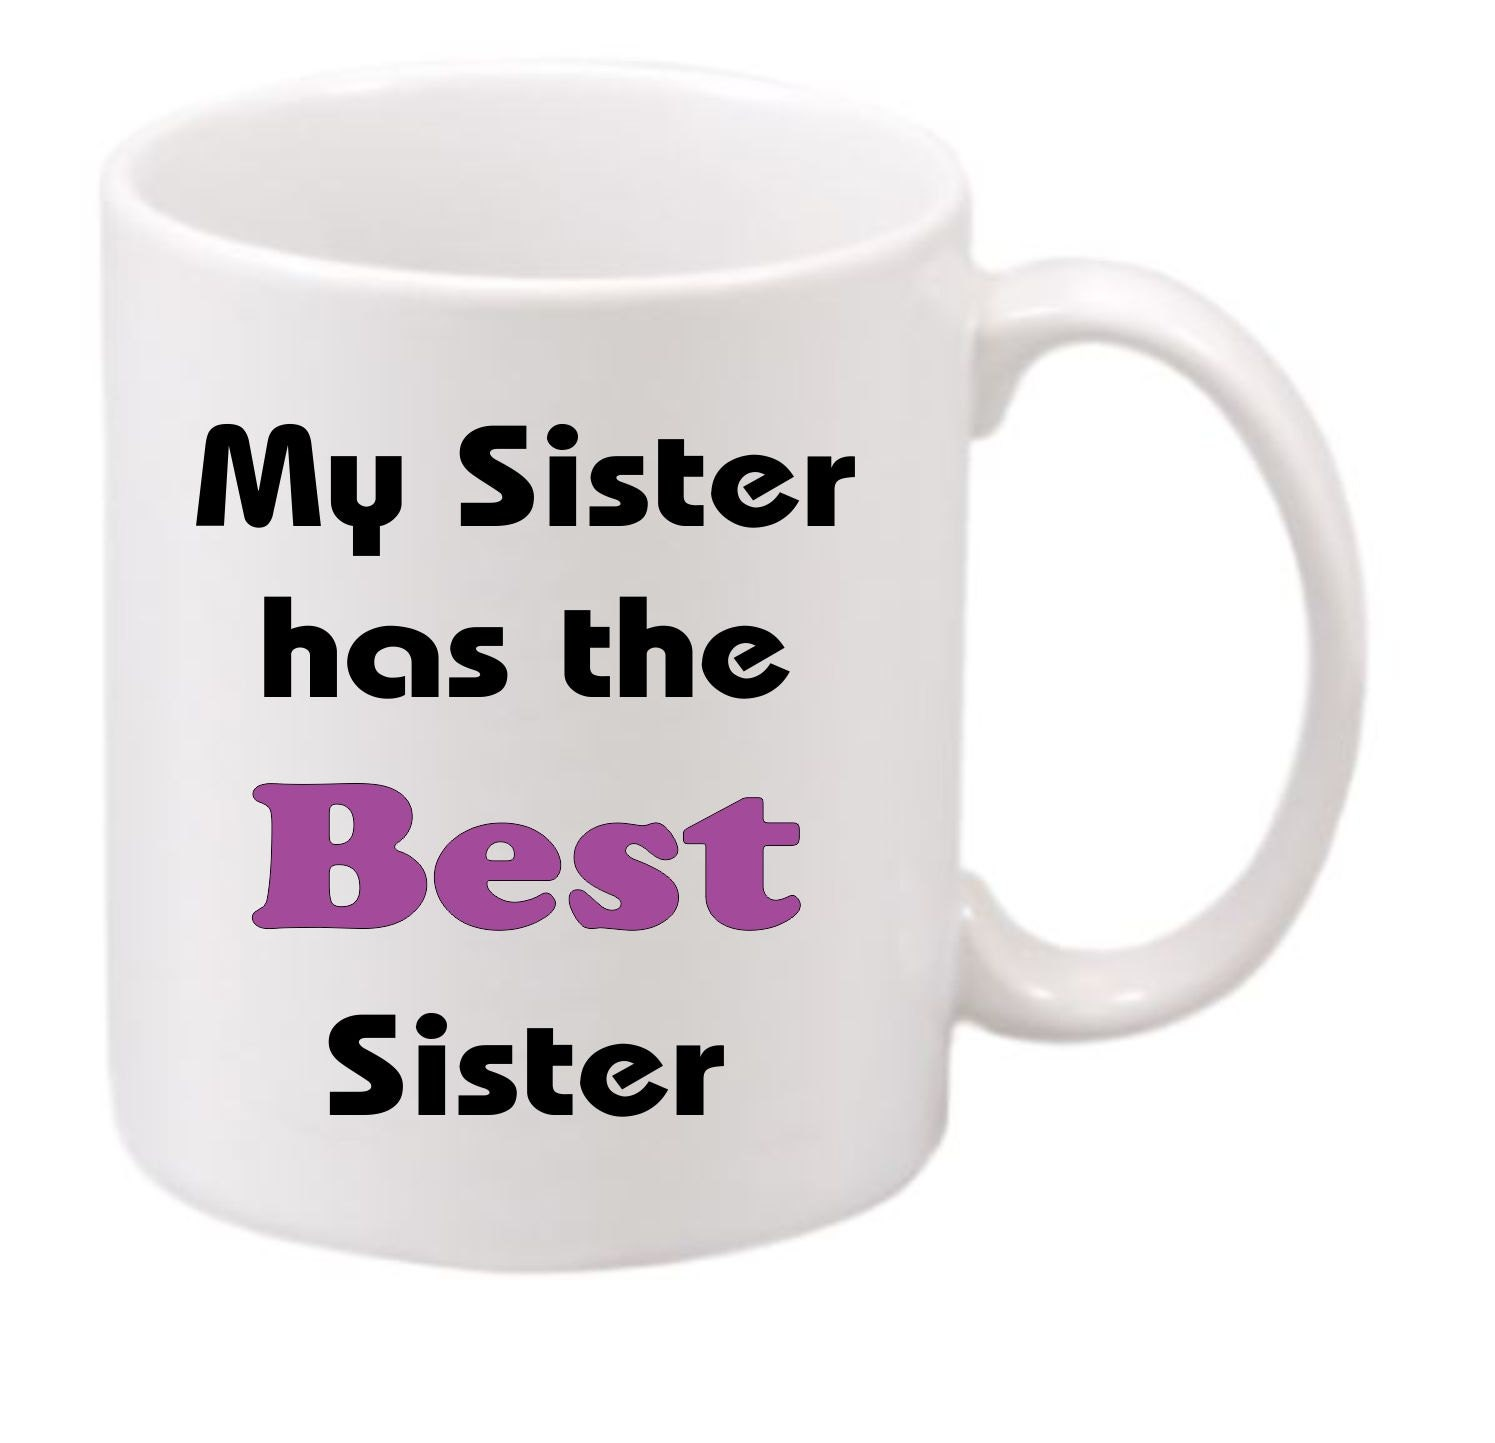 My Sister Has The Best Sister 197 Funny Coffee Mug Witty Coffee Mug Family Coffee Mug Cute Mug Sister Coffee Cup